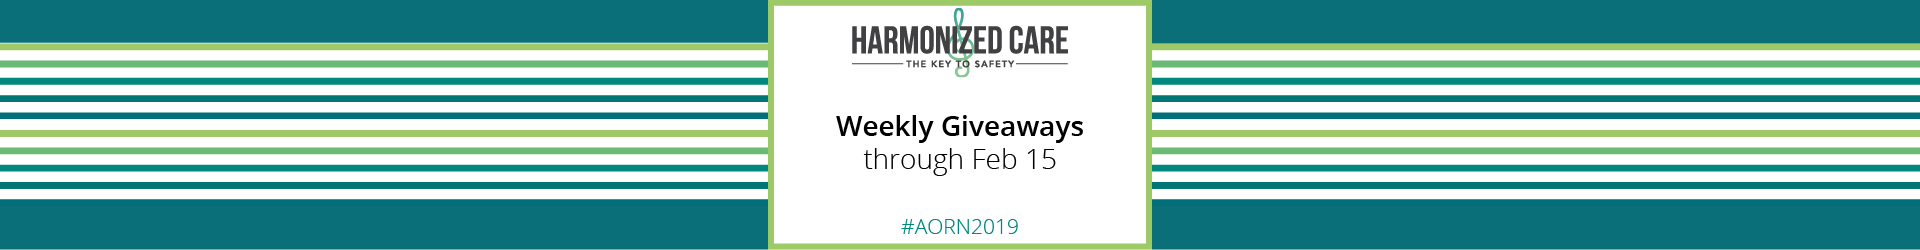 Weekly Giveaways through February 15